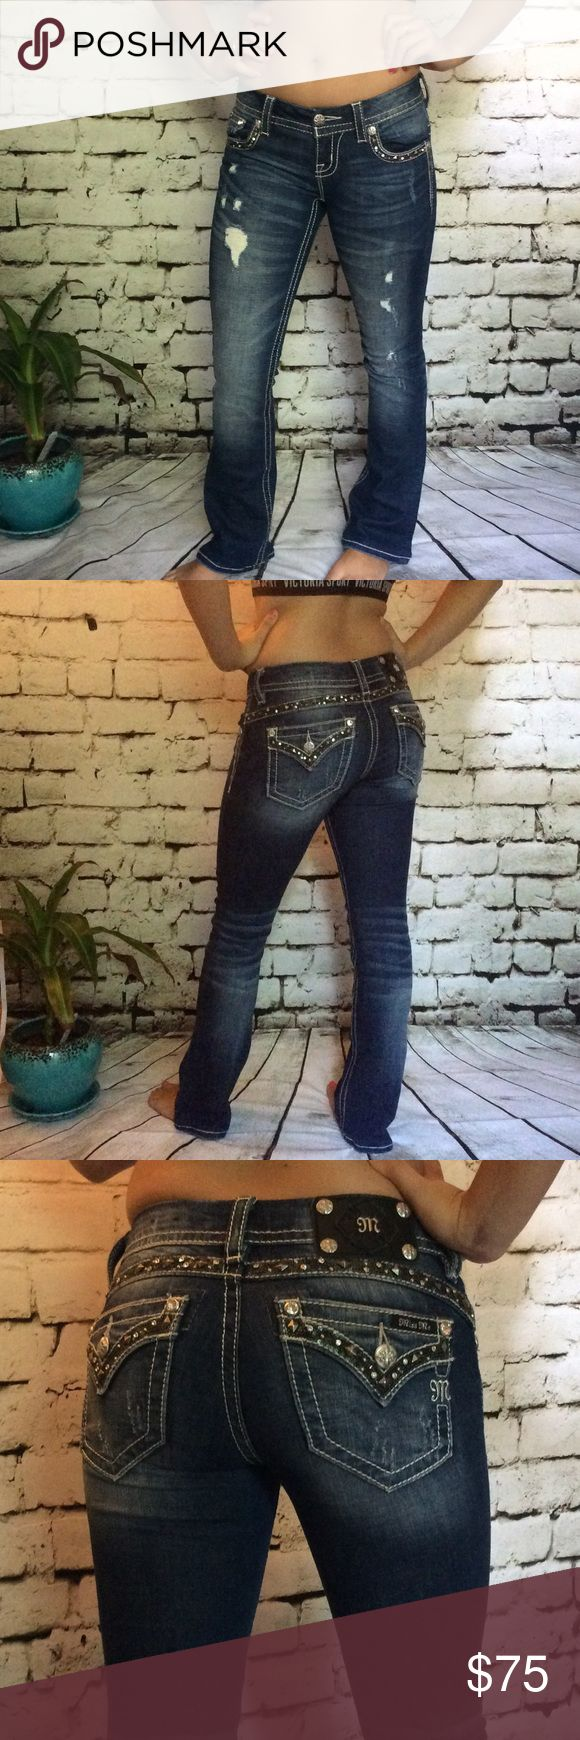 Miss Me Jeans Gorgeous Miss Me jeans are a signature boot cut Jean with a 24 inch waist. These jeans feature white stitching sequins and embellishment metal hardware around the pockets and buttons as well as a distressed style on the front and back. Perfect condition, no flaws. These jeans were bought and hemmed at the buckle store to reflect a 28 inch inseam and 36 inch from waste to floor hem. Fit perfectly for any female that is 5 foot 2 or shorter. Literally worn once Miss Me Jeans Boot…